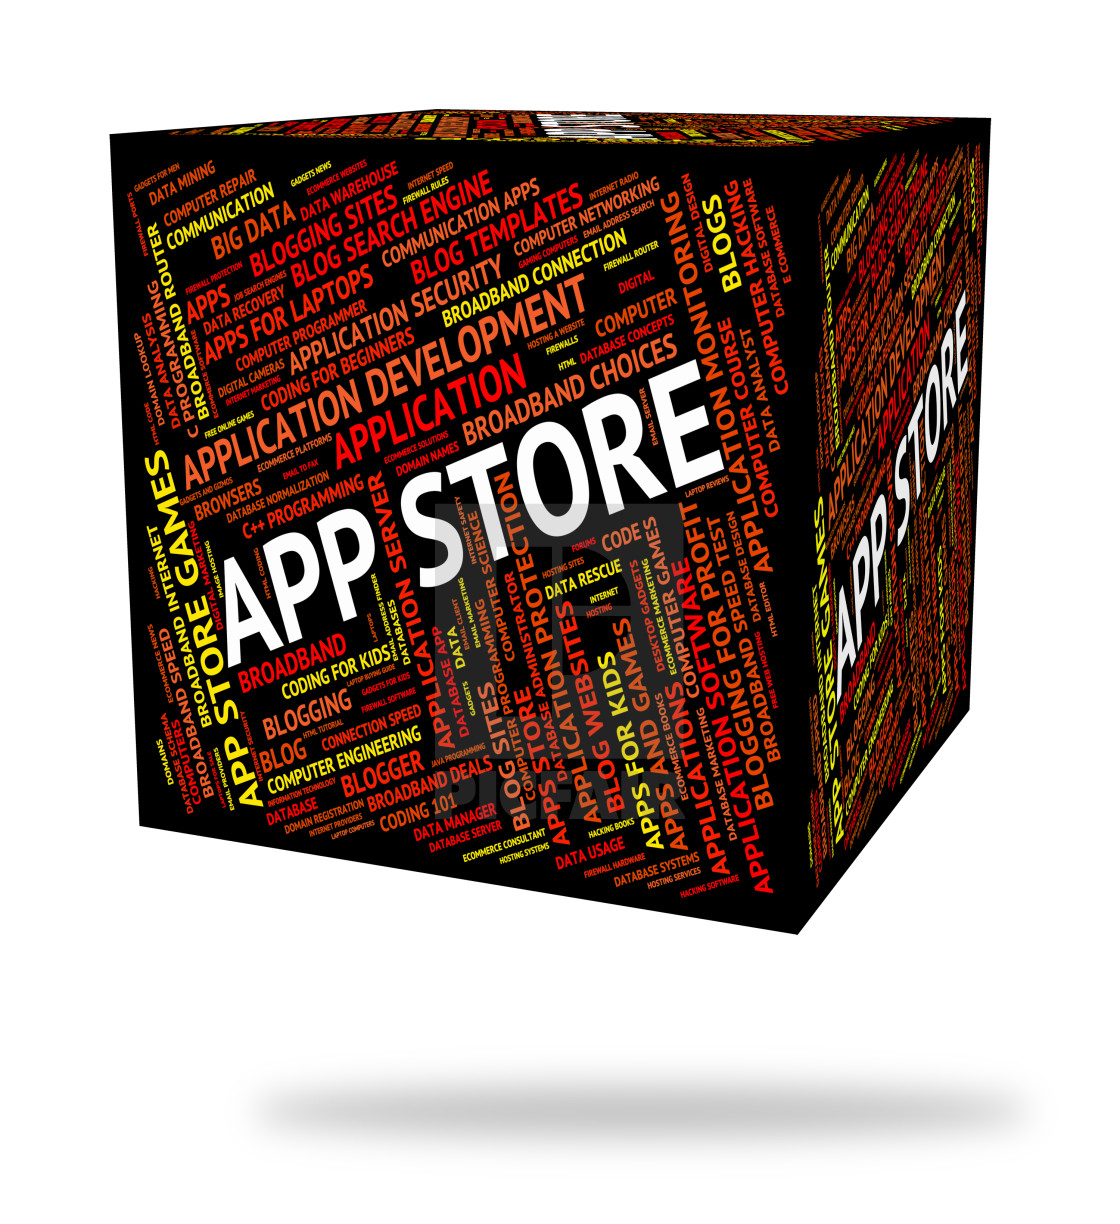 App Store Indicates Retail Sales And Application License Download Or Print For 6 20 Photos Picfair